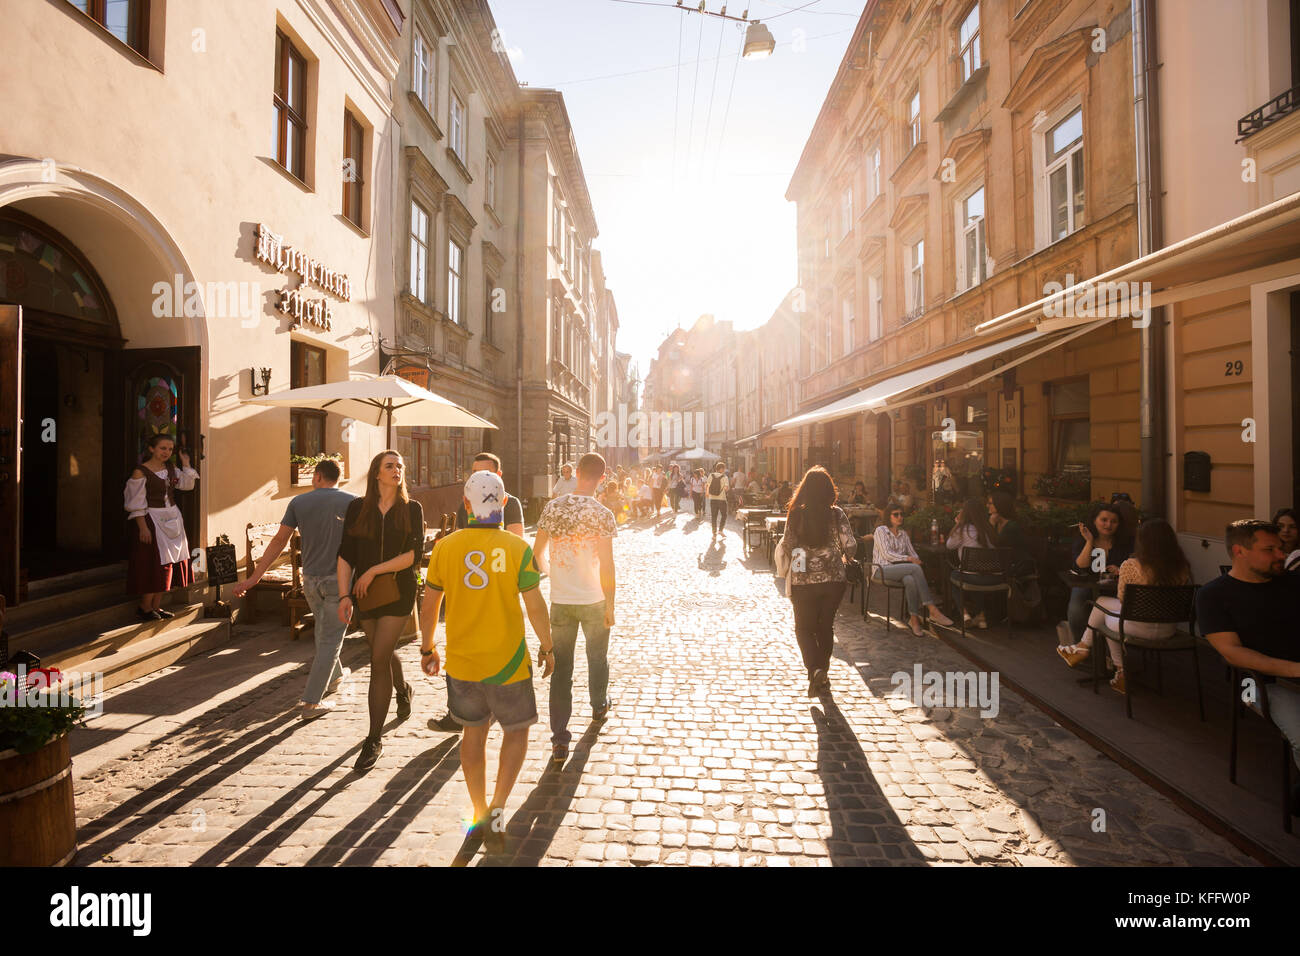 Tourists wander the cobblestone streets of the old city in Lviv, Ukraine - Stock Image